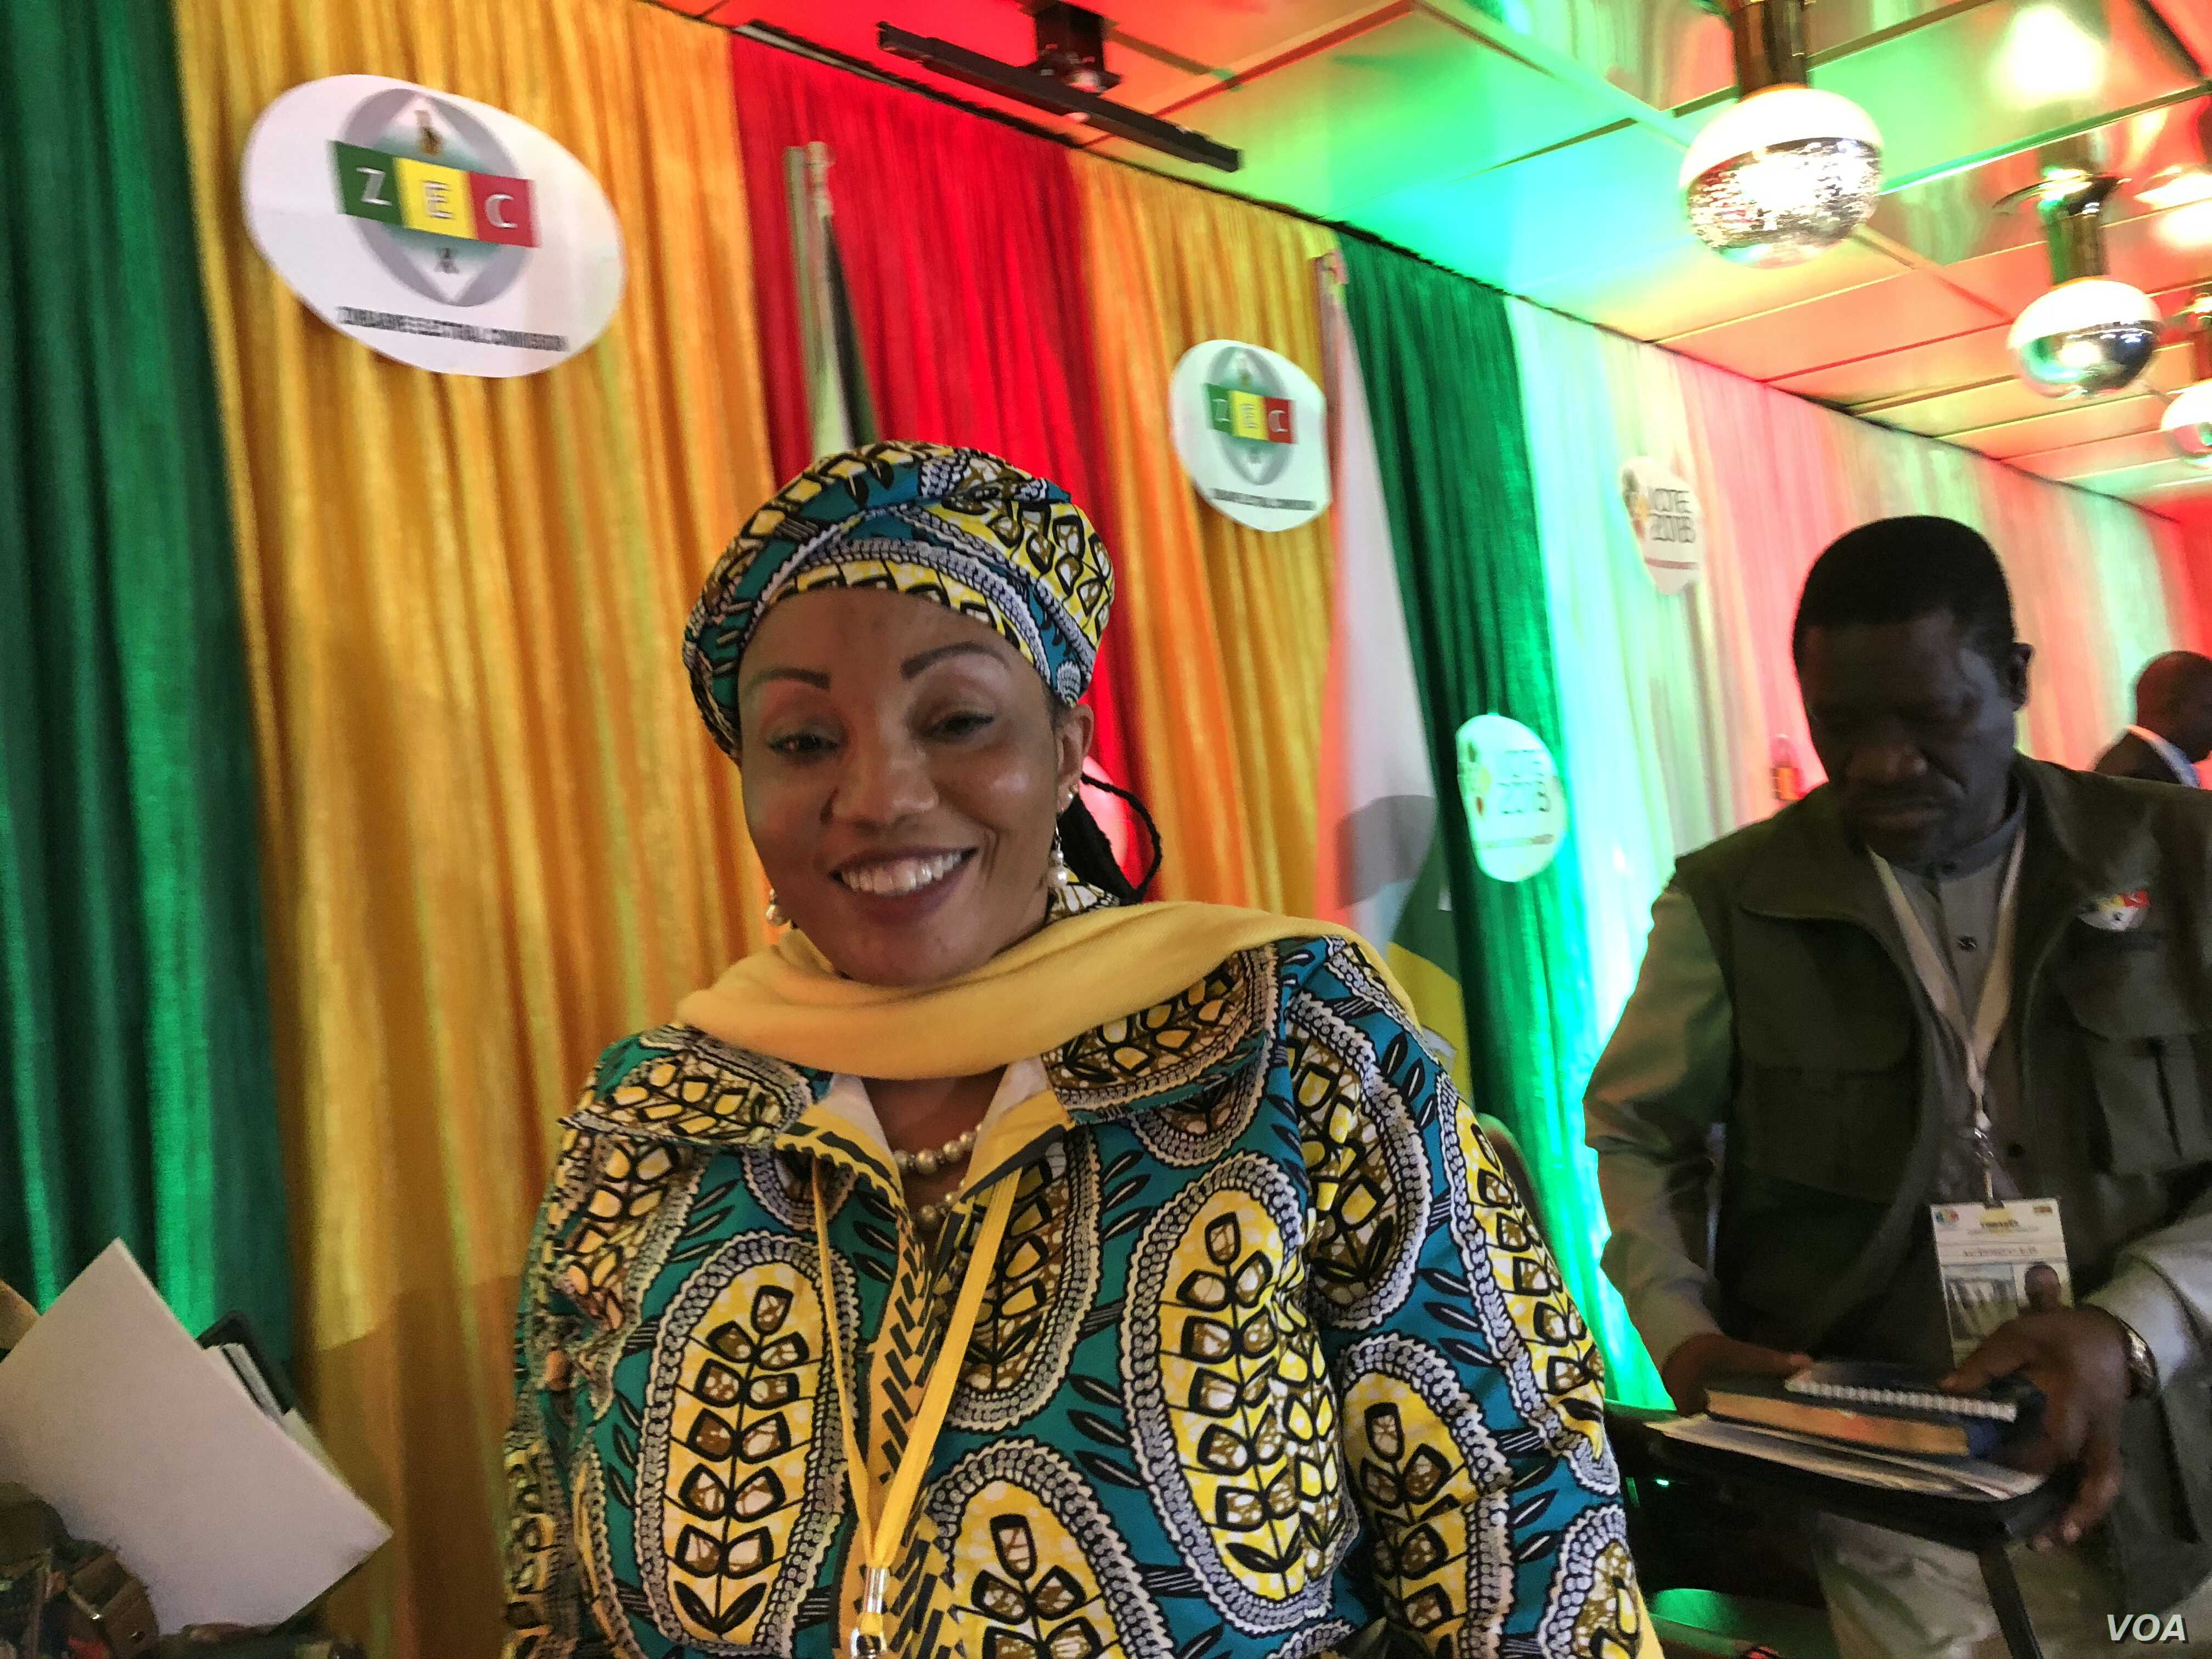 Zimbabwe Electoral Commission Chairperson Priscilla Chigumba could not be reached for comment about International Republican Institute (IRI) and the National Democratic Institute (NDI) report (C. Mavhunga/VOA)